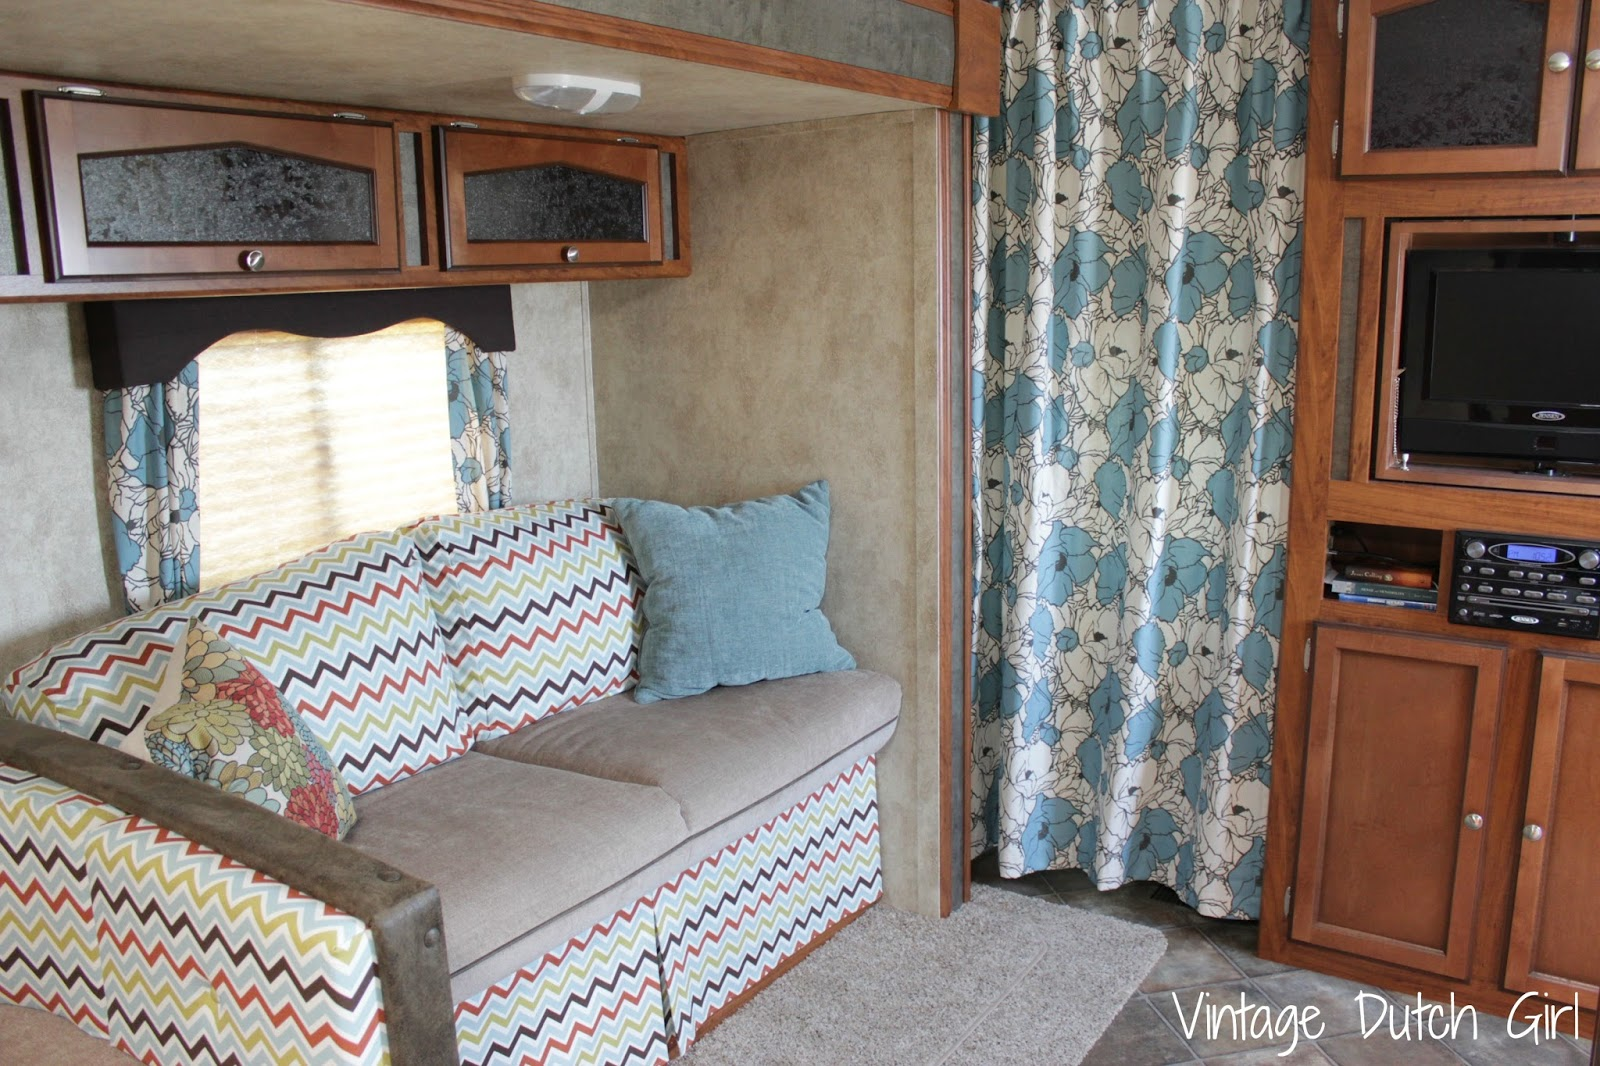 Vintage Dutch Girl Travel Trailer Makeover Part 8 Master Bedroom And Privacy Curtains